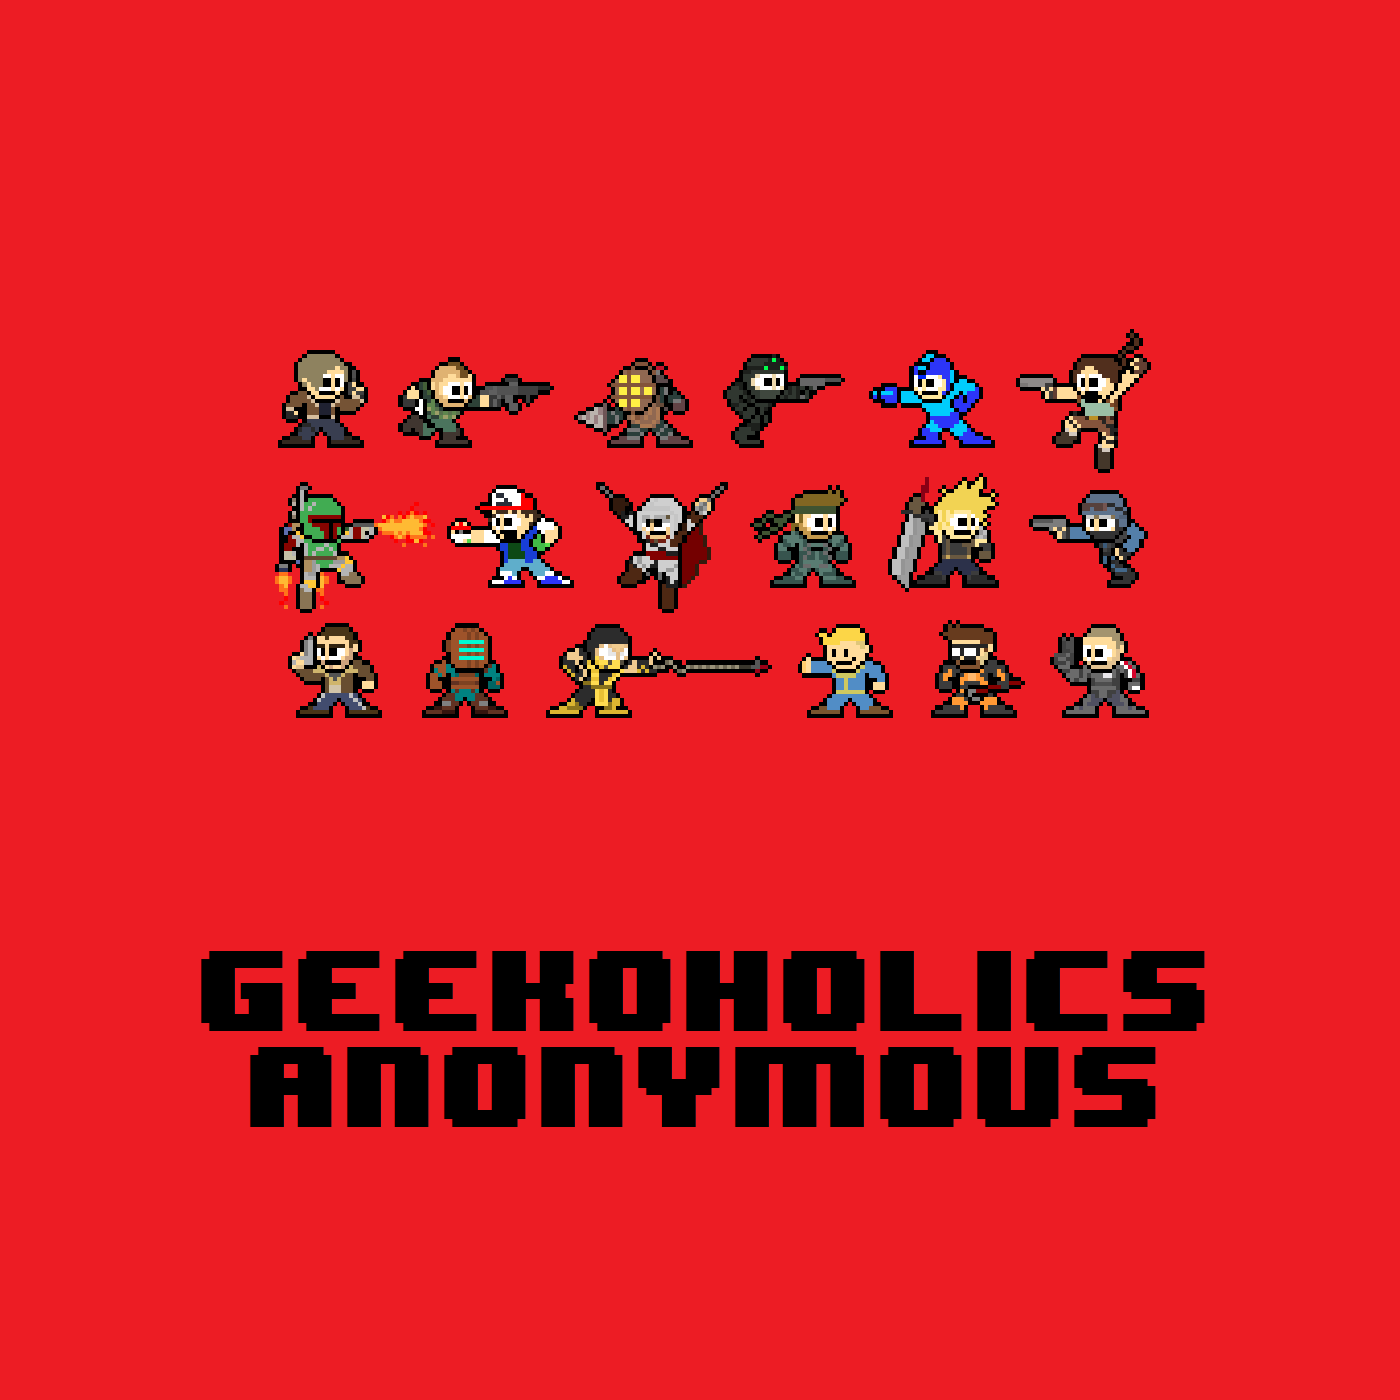 Hot Wheels Unleashed, Kena Bridge of Spirits, Foundation and more - Geekoholics Anonymous Podcast 325 show art